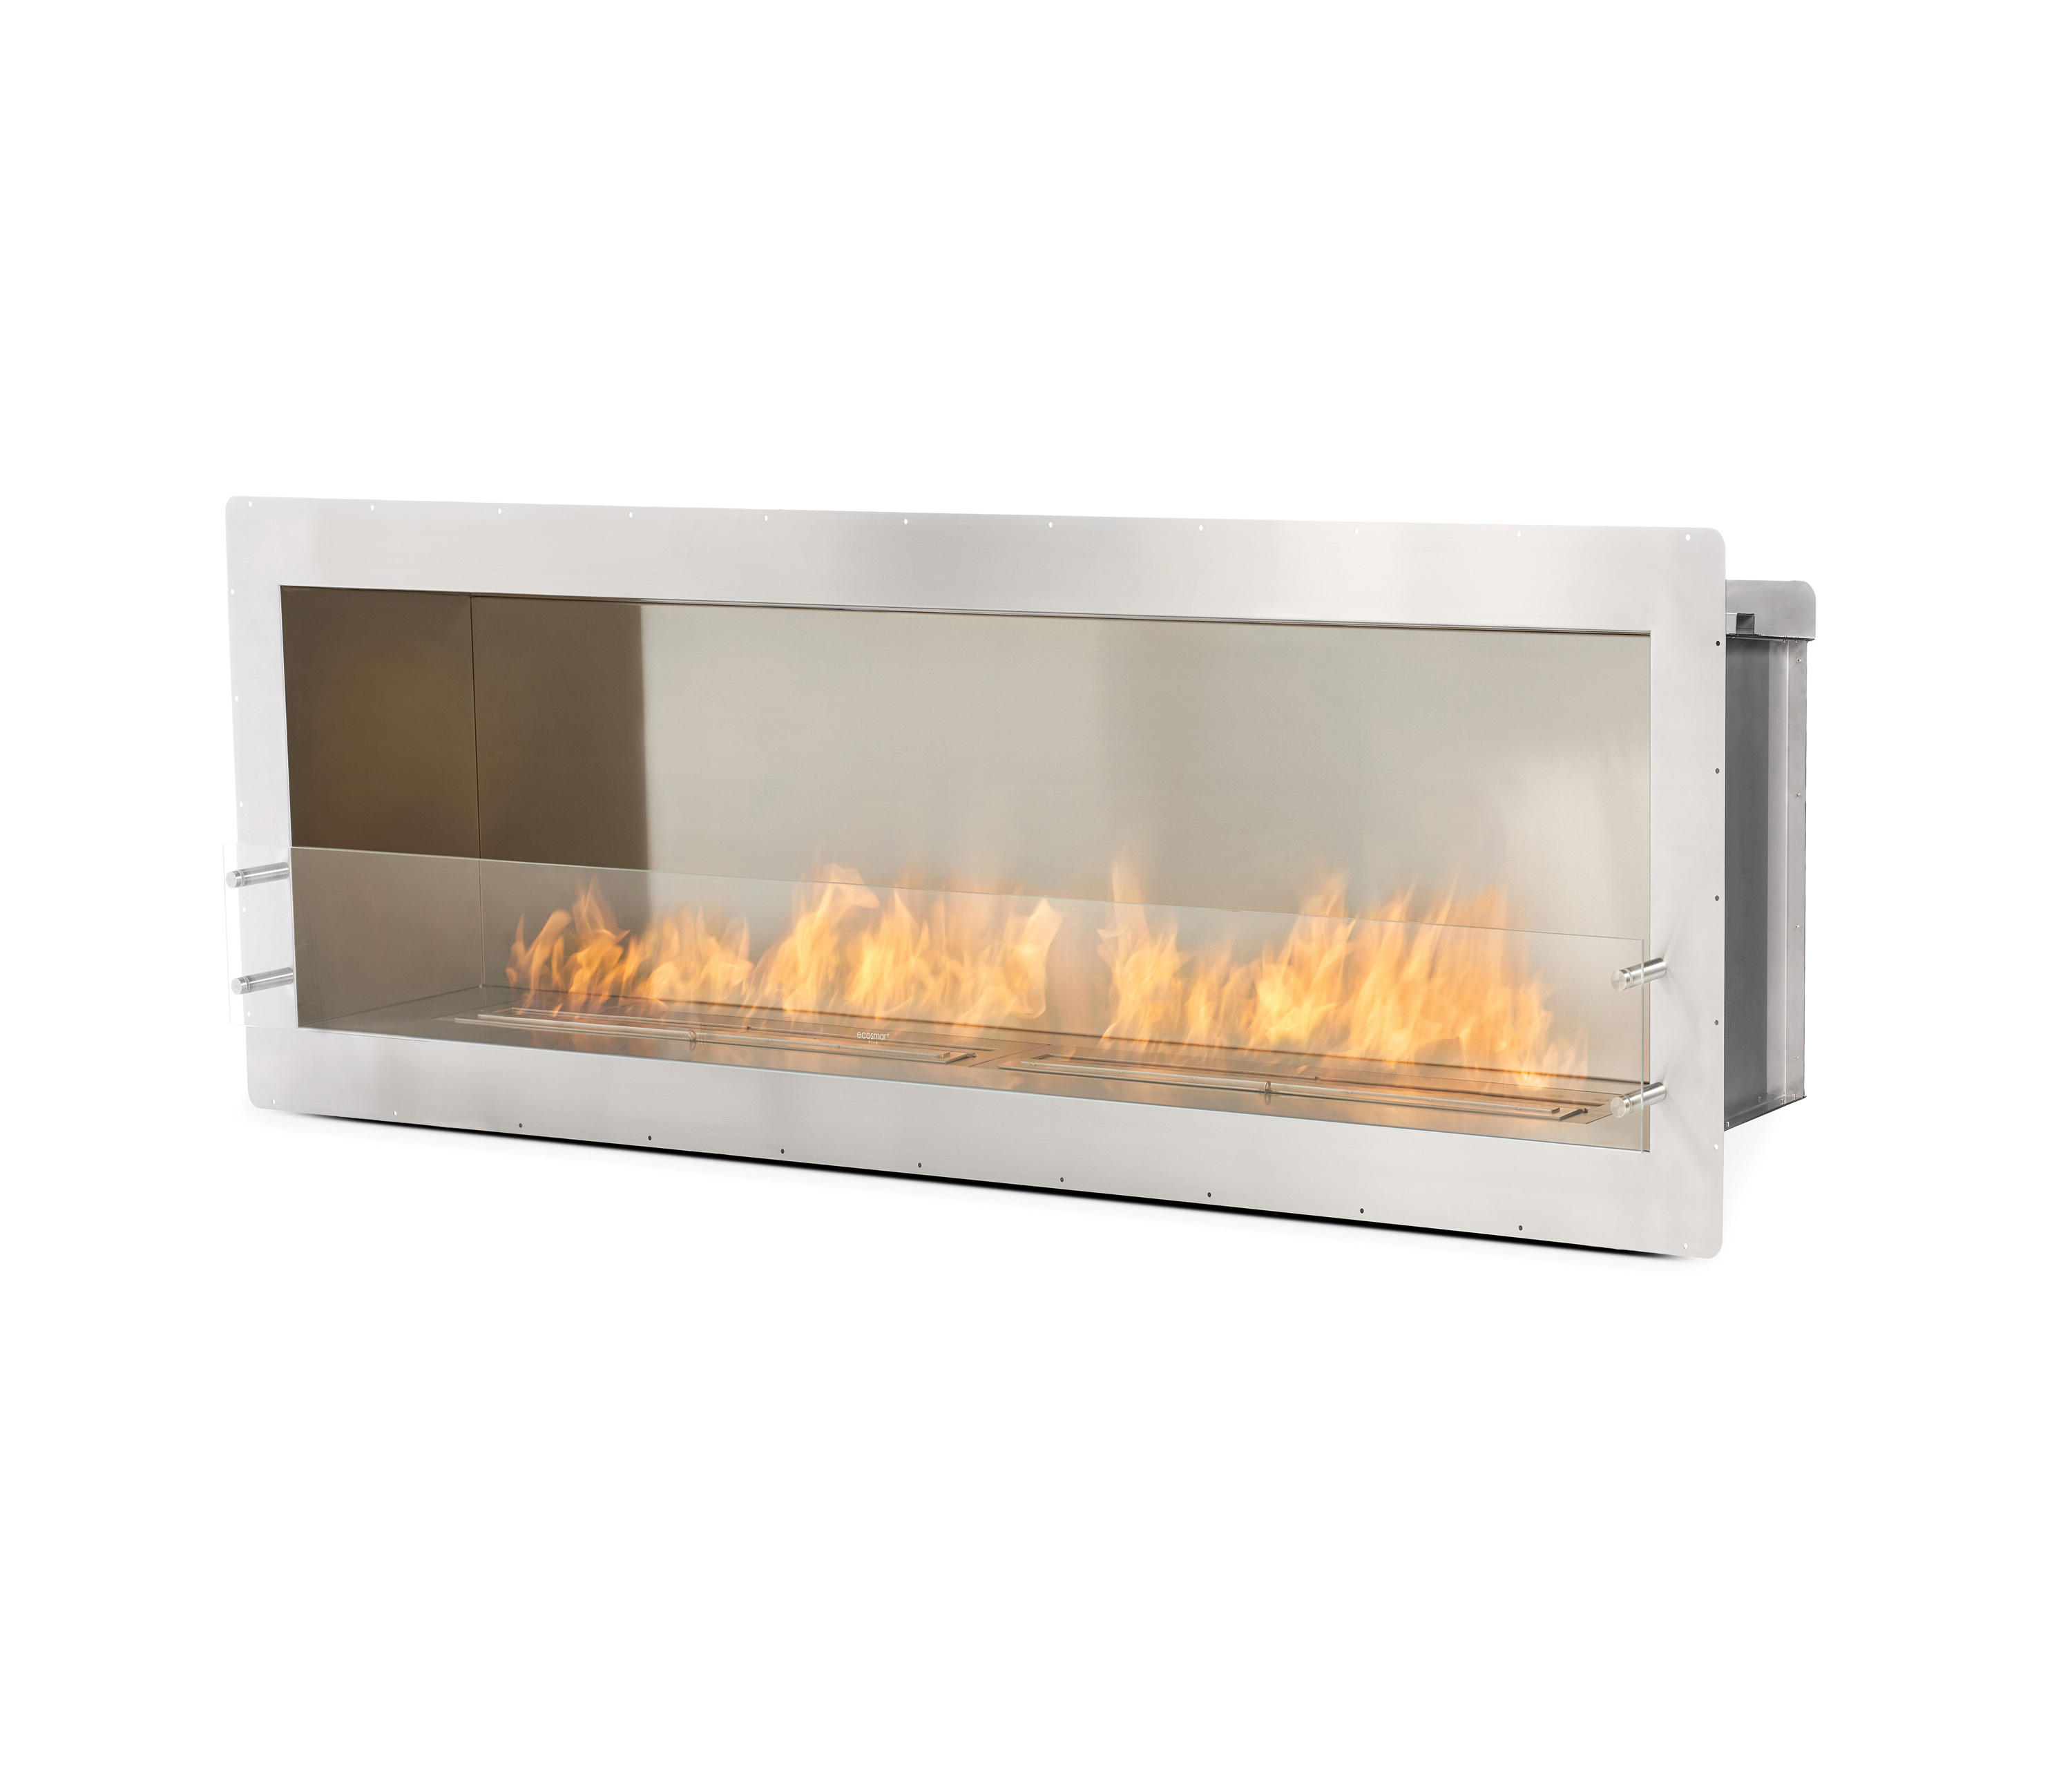 avec bio ecosmart fabulous bioethanol fireplaces for alcohol decors ideas fire fireplace and idea ides idees places interior decor home et bur ethanol your design insert